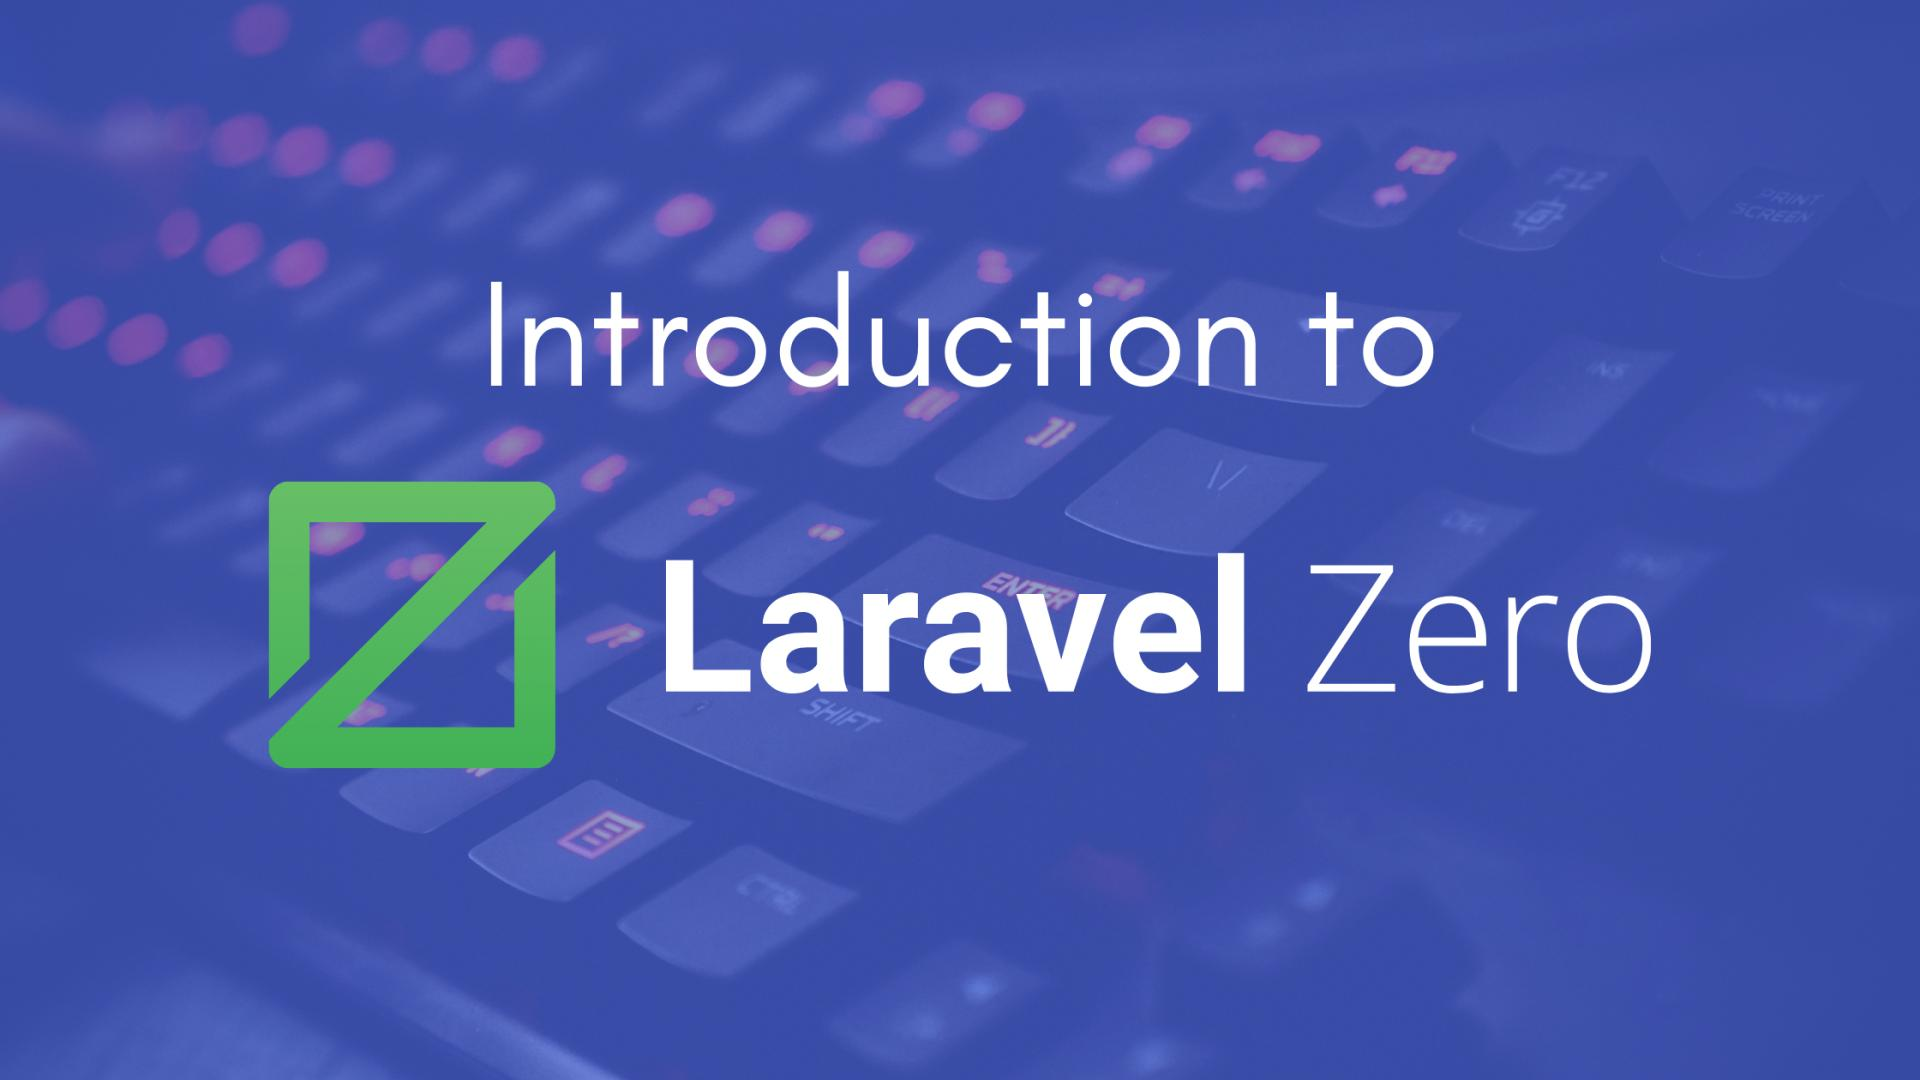 What is Laravel Zero and how to get started?